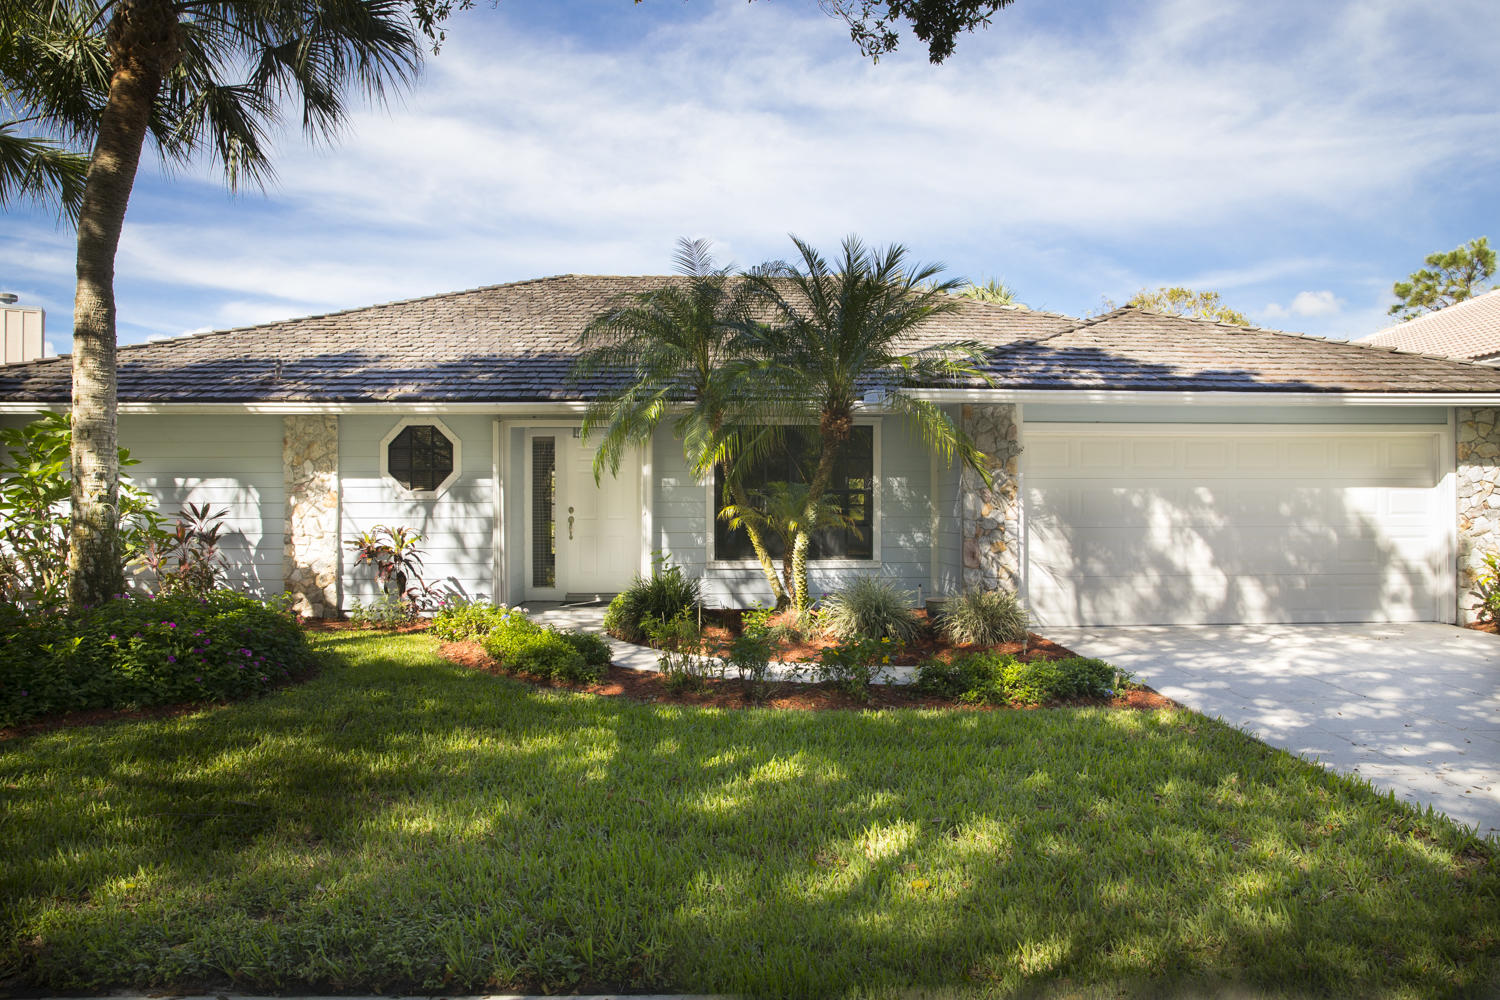 18920 Misty Lake Drive  - Abacoa Homes - photo 1